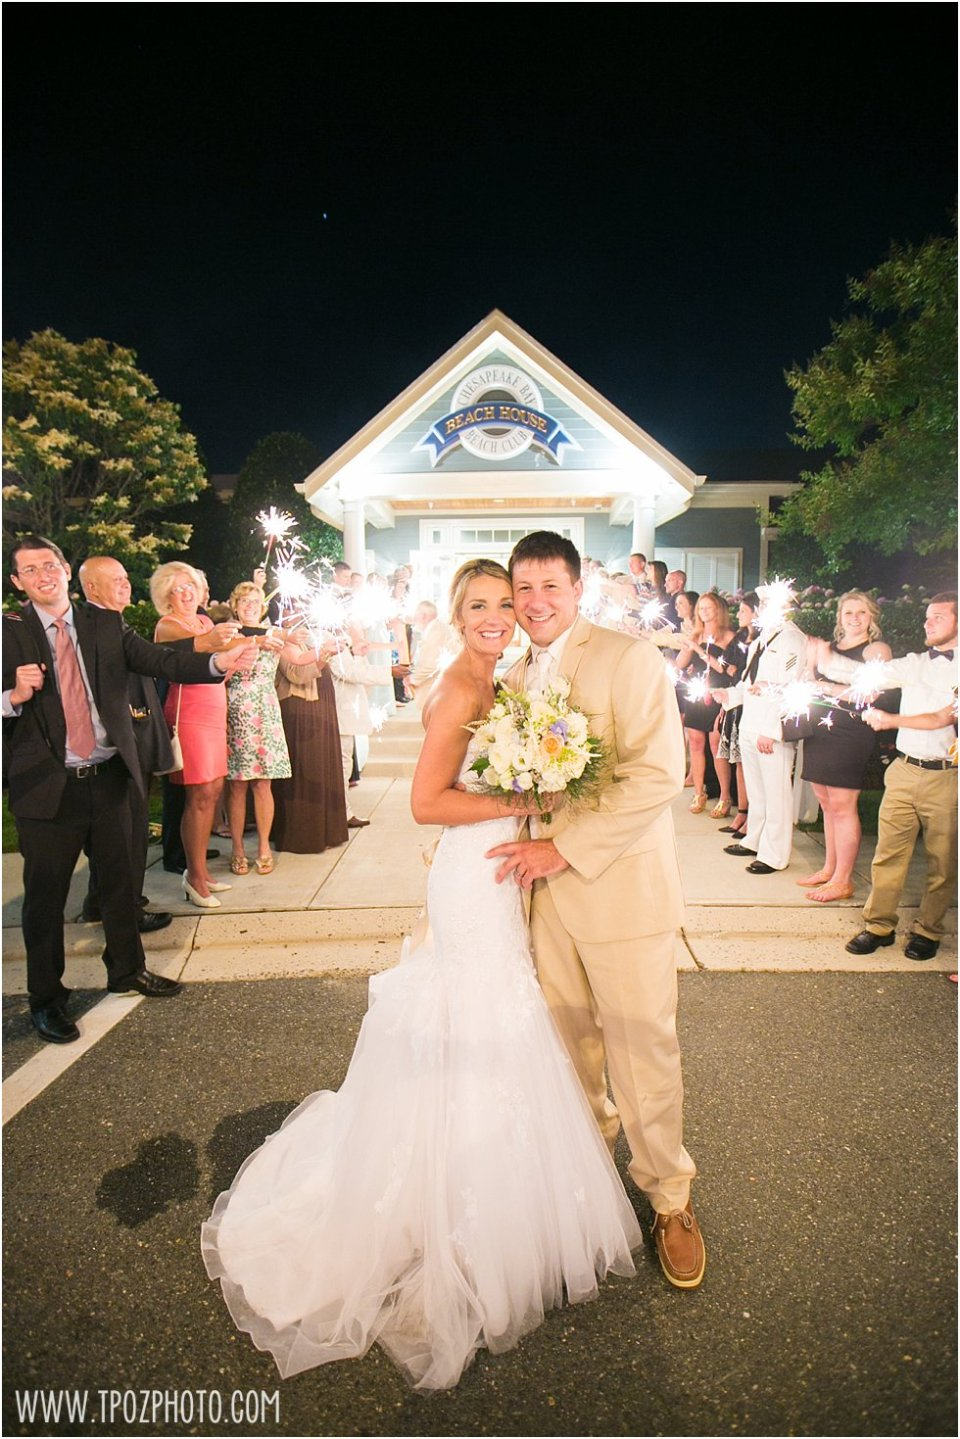 Wedding at the Chesapeake Bay Beach Club • tPoz Photography •  www.tpozphoto.com